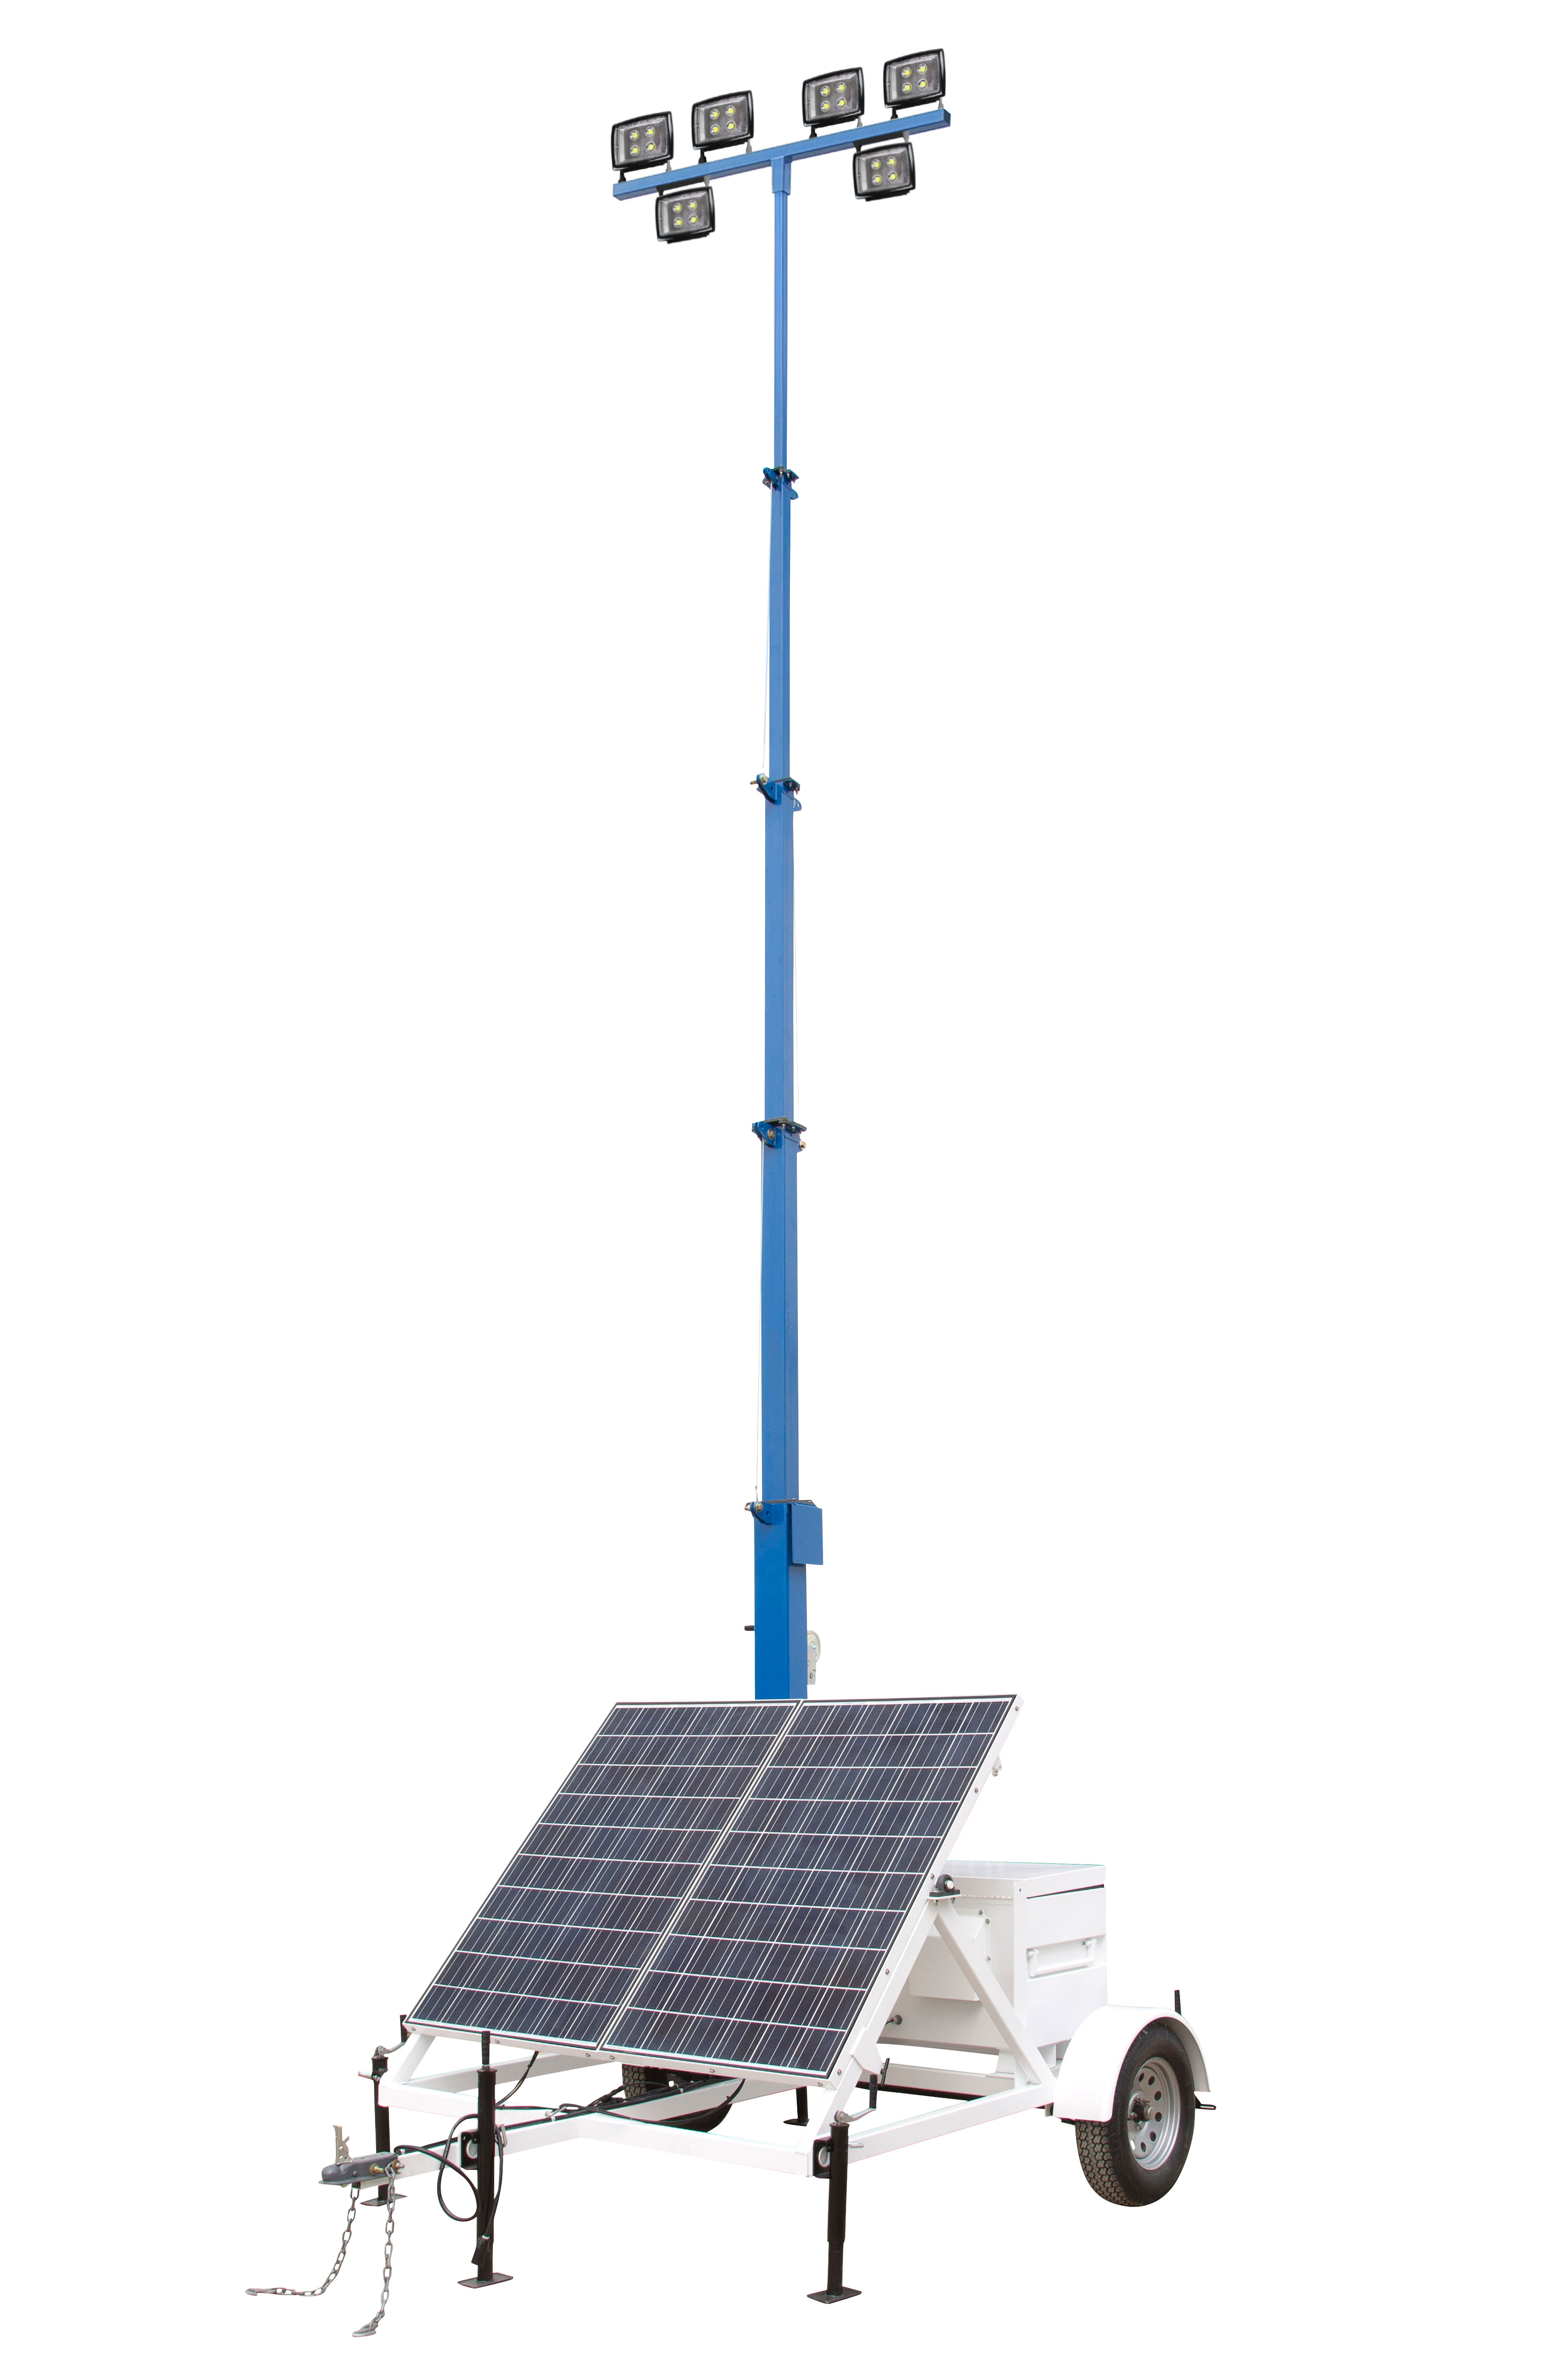 Larson Electronics Releases Portable Solar Powered Light